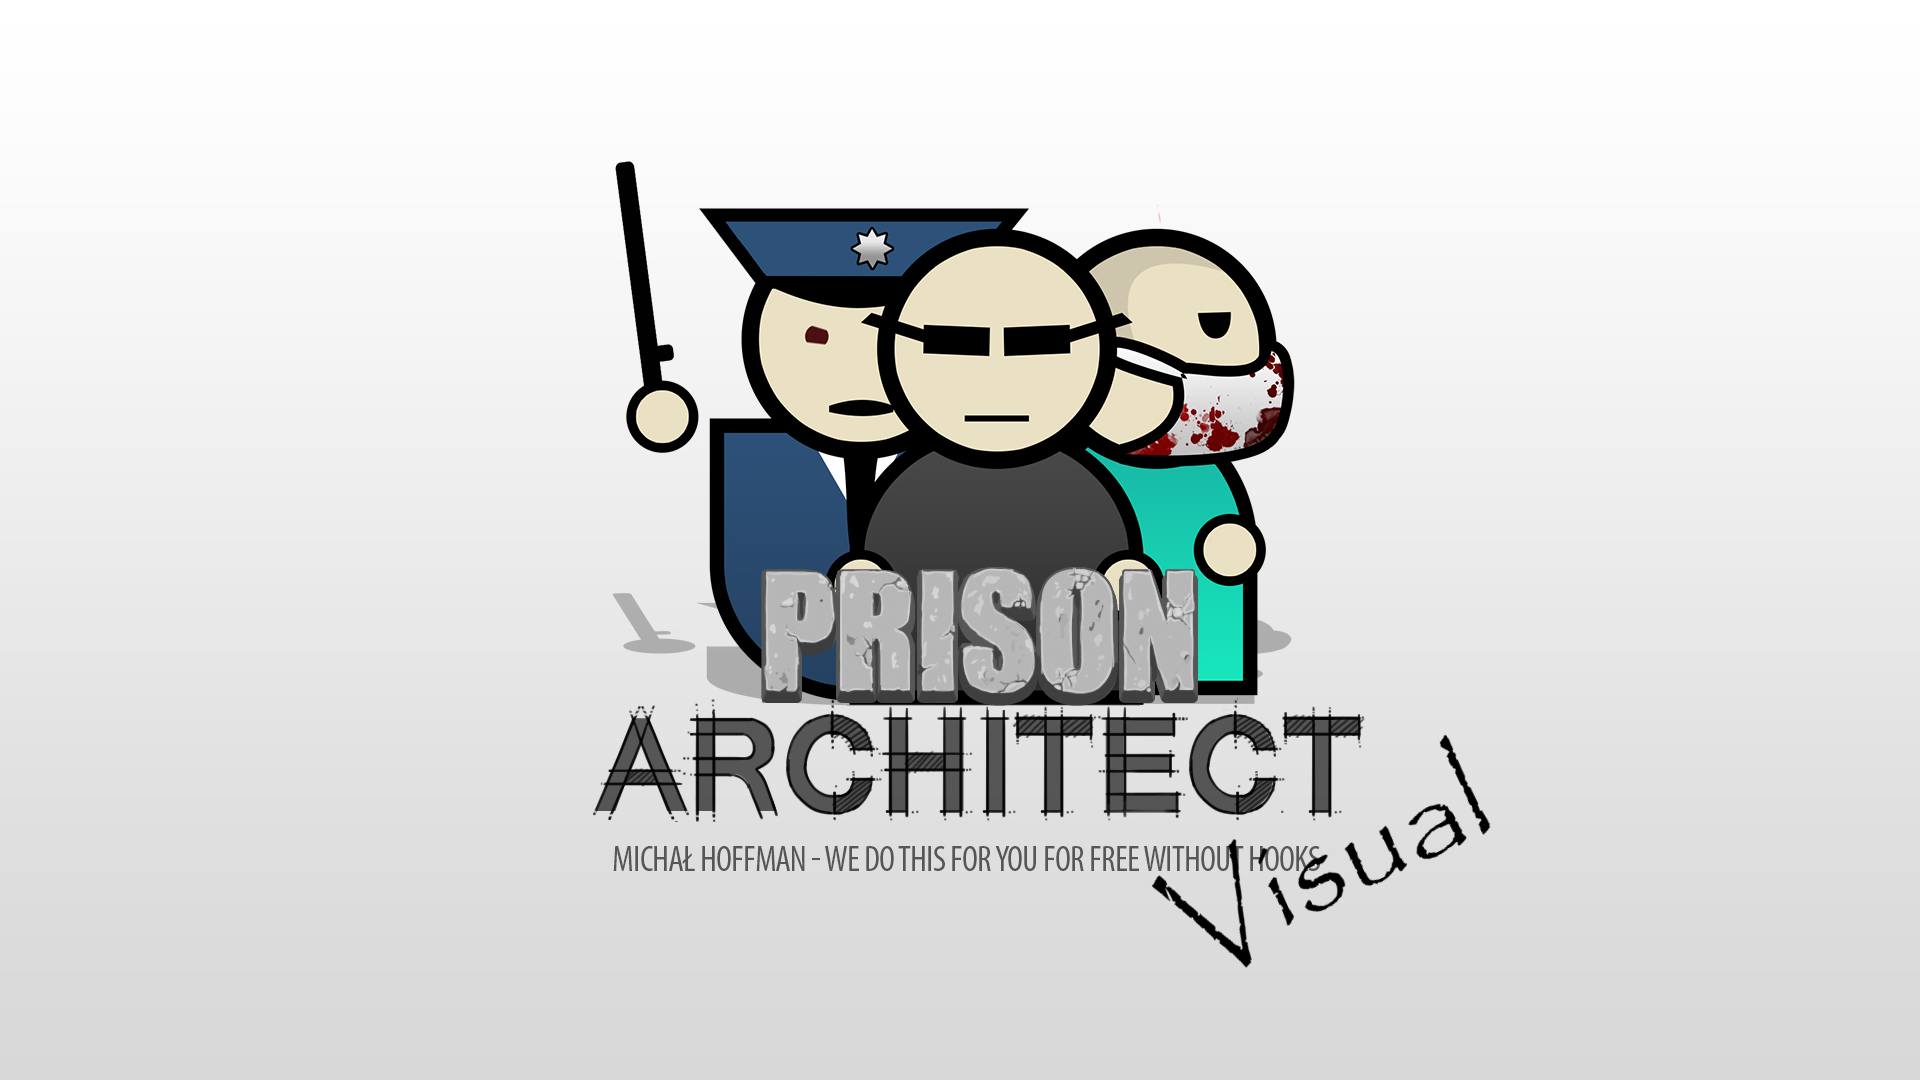 [MoD] - Prison Architect Visual